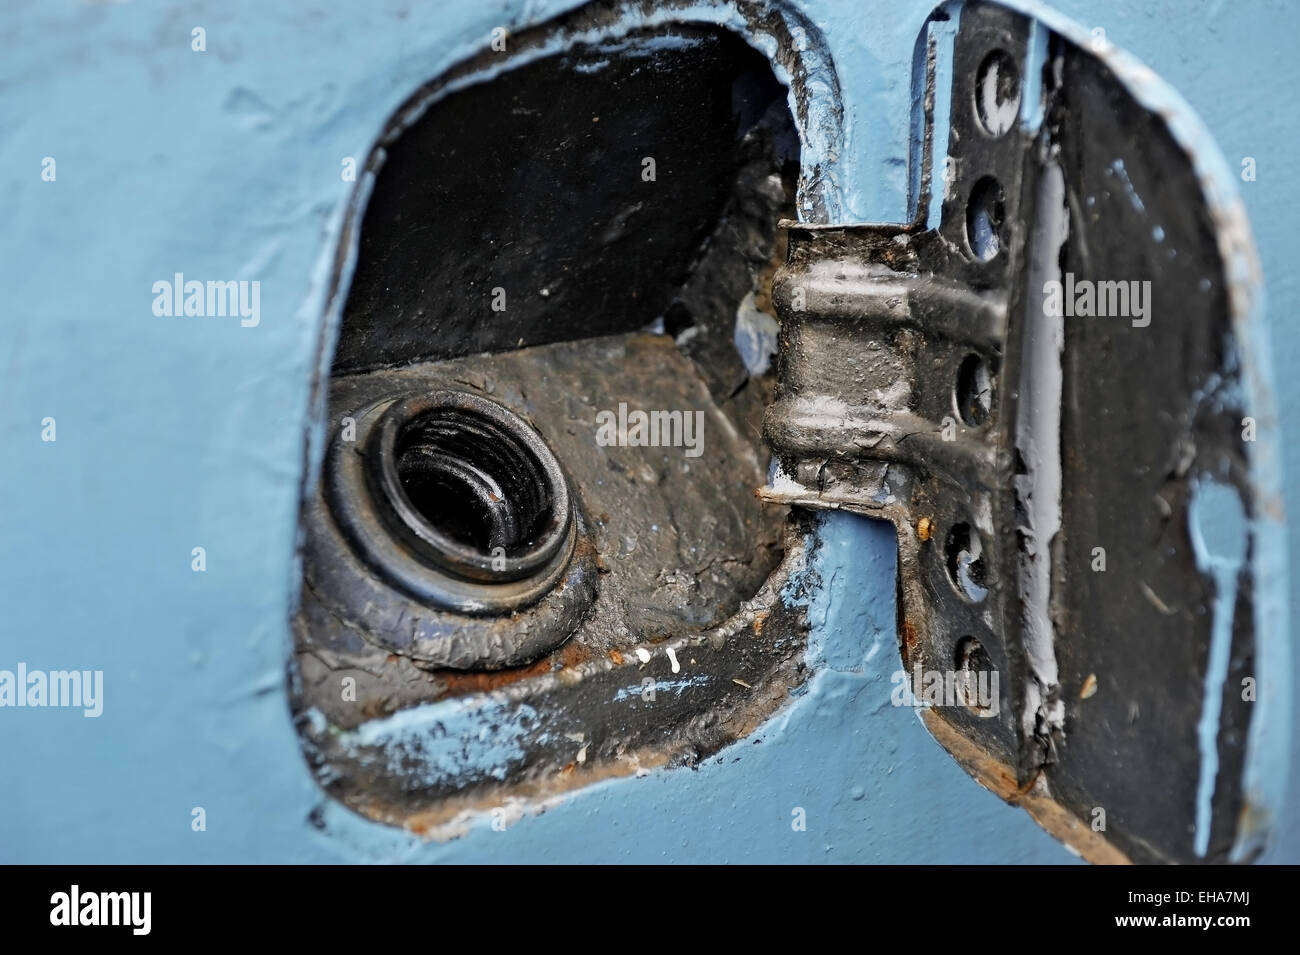 Detail with a fuel cap from a junk abandoned blue car - Stock Image